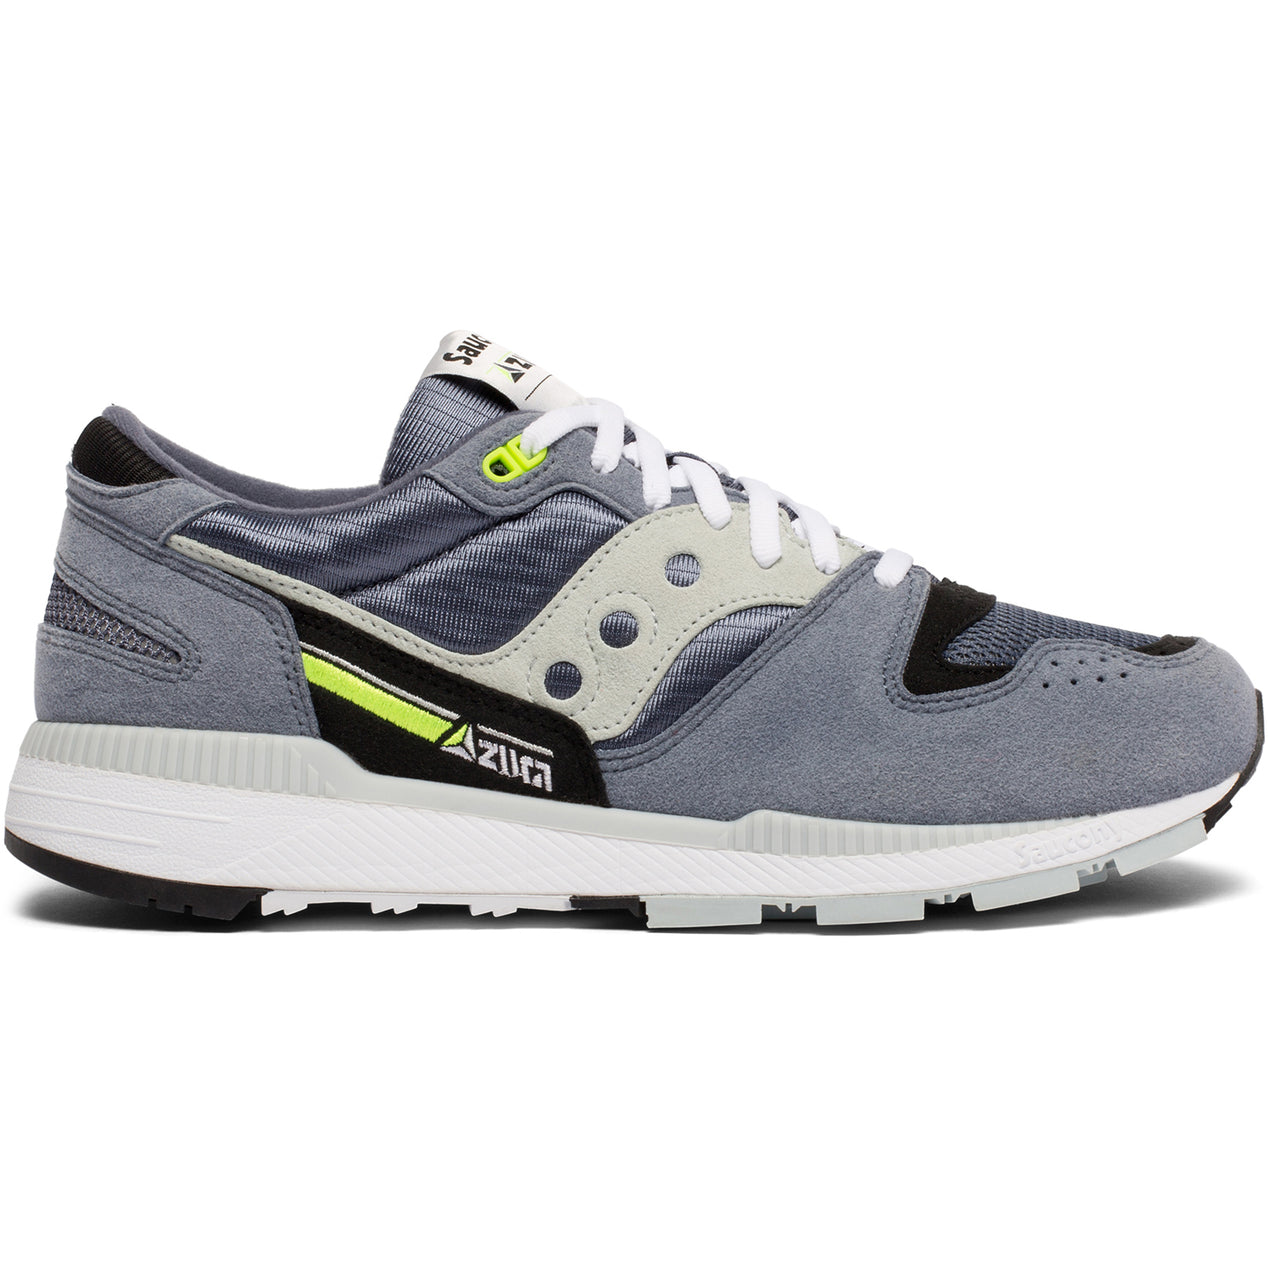 sports shoes fbc77 e0604 Saucony Azura Shoes - Men s